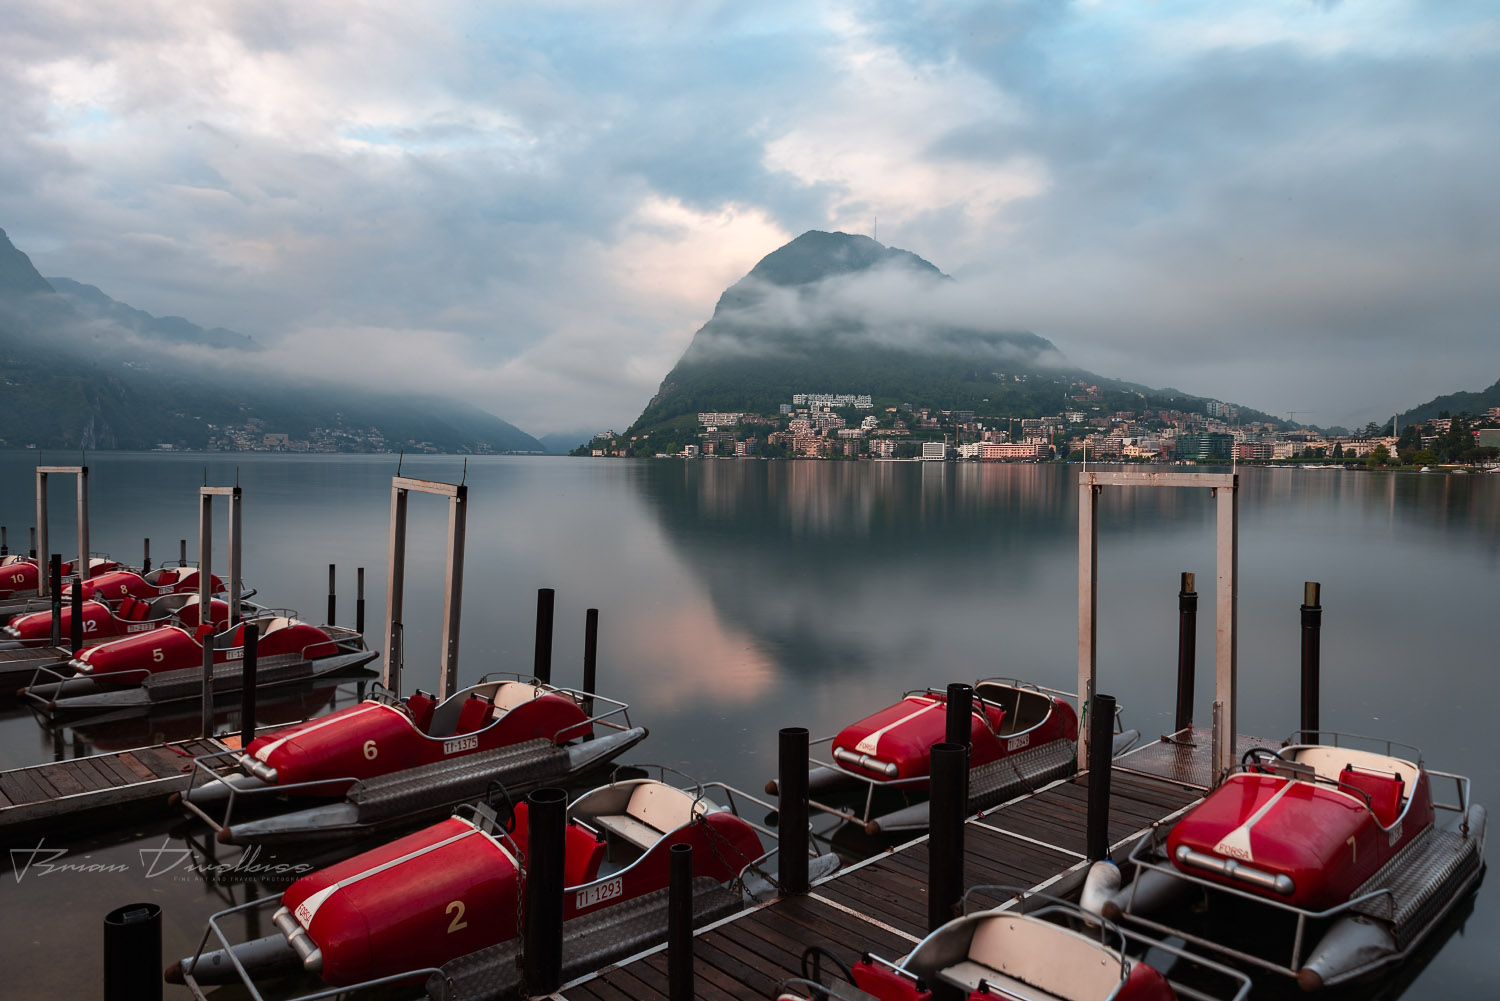 Dock of paddleboats on Lake Lugano with Monte San Salvatore in background in Ticino, Switzerland.